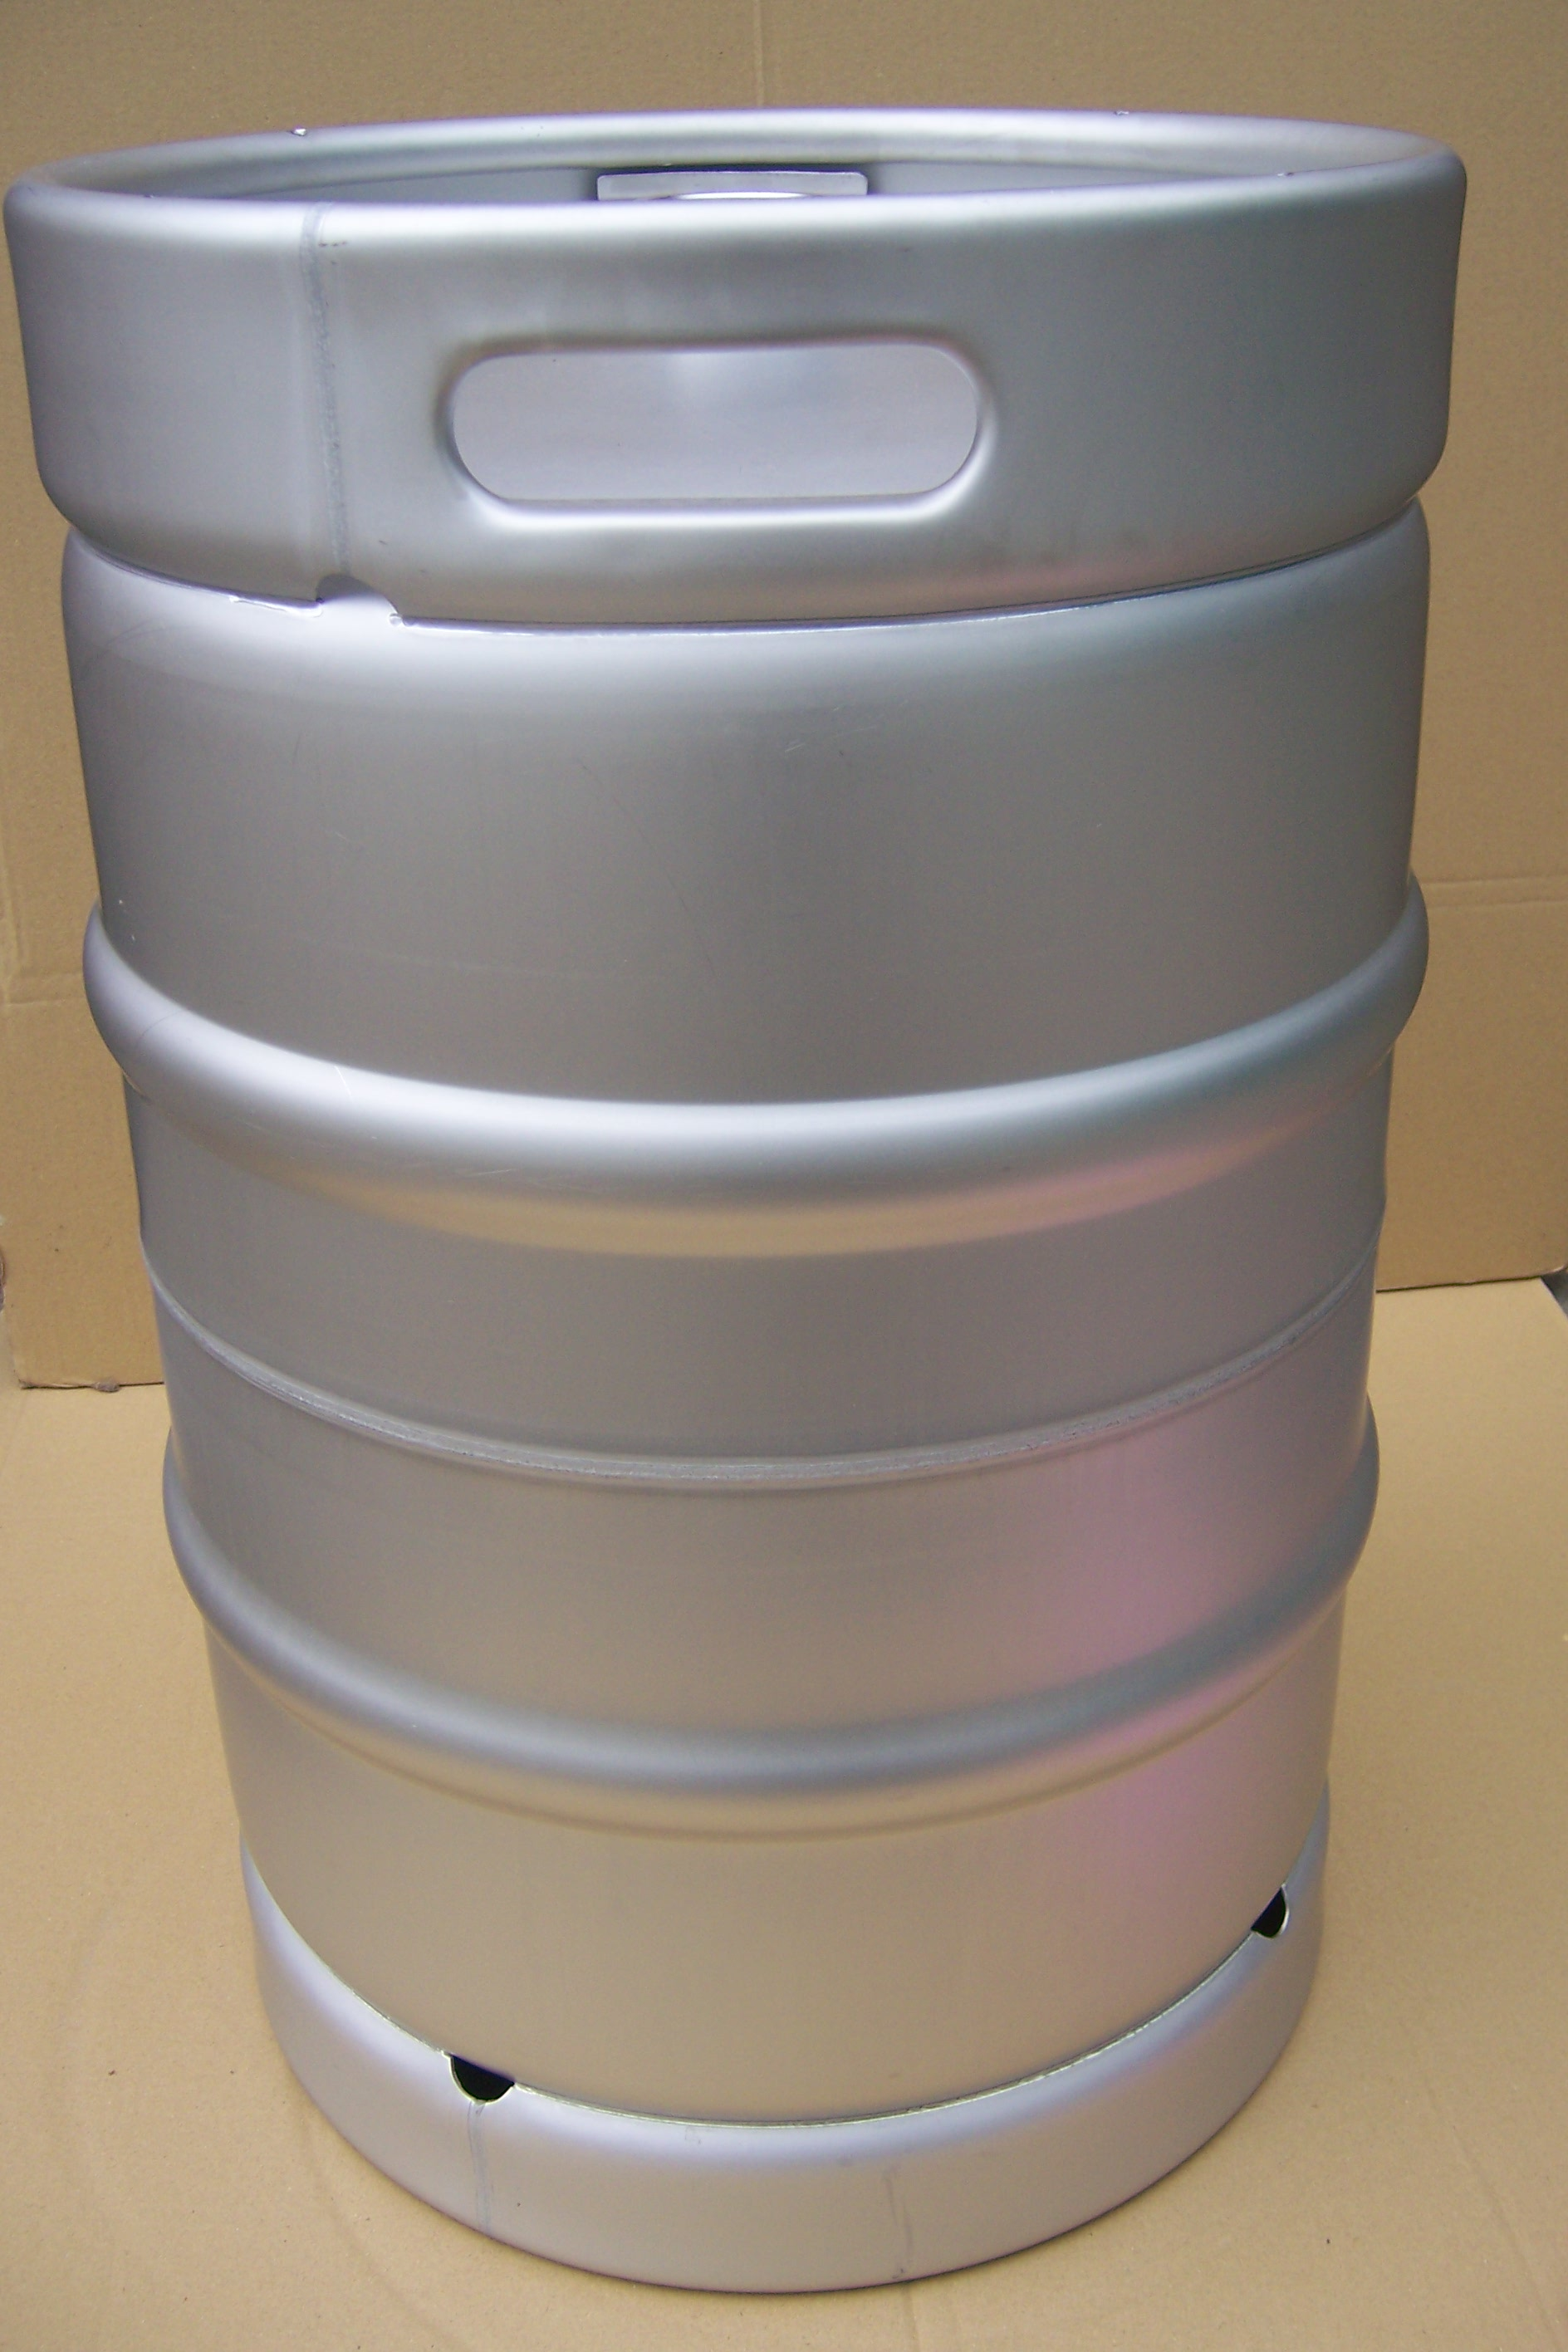 beer barrel 15.5gallon US keg with micro matic spear for brewing use